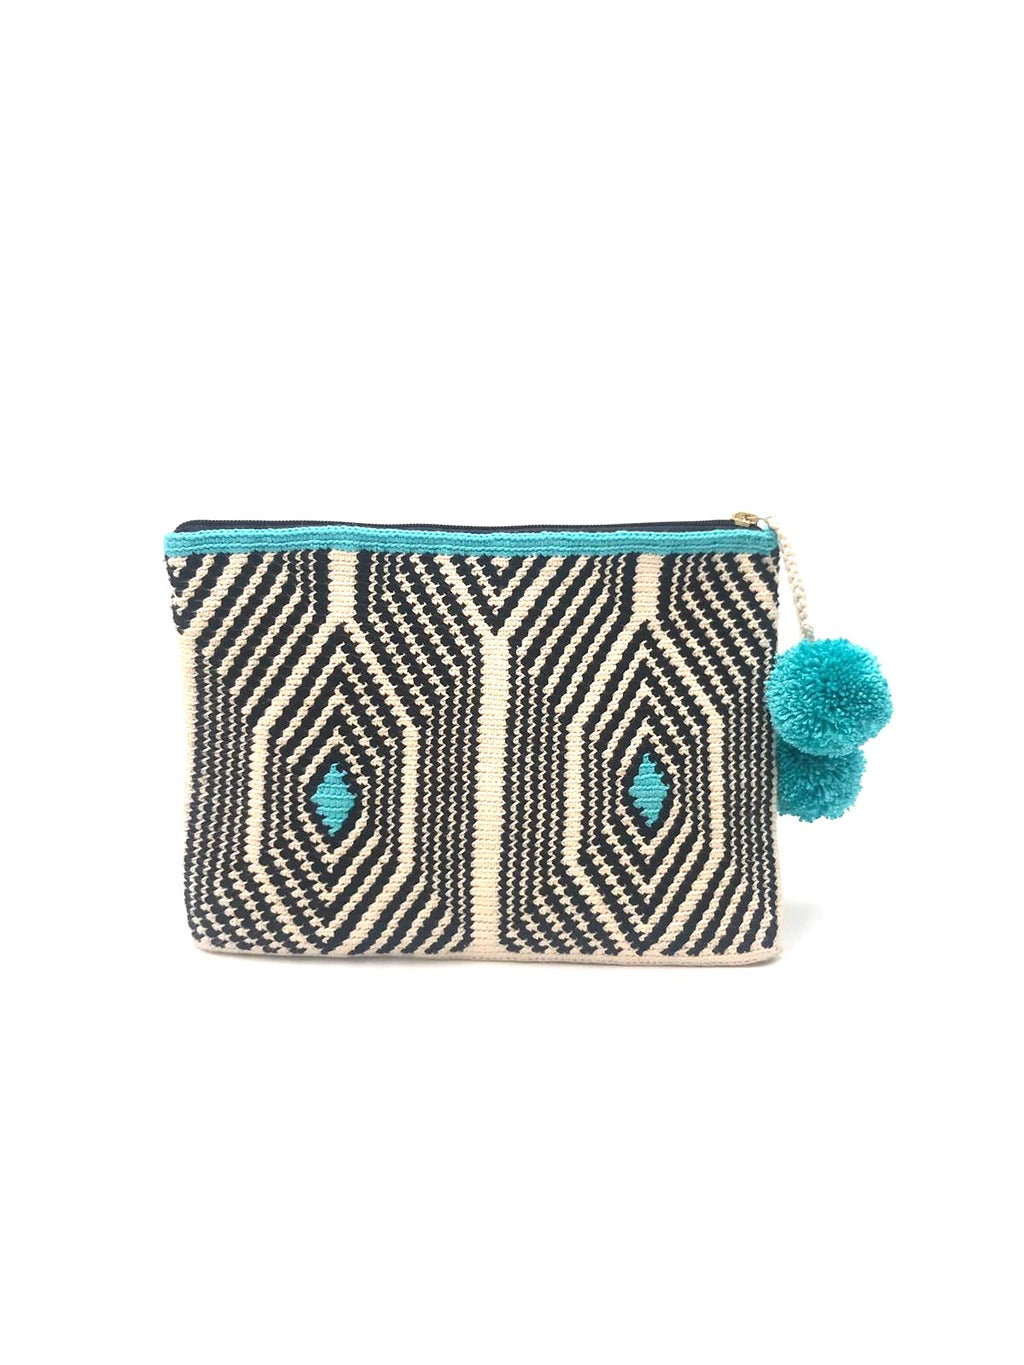 Honeycomb clutch, off white body, black sequence and turquoise with turquoise pompoms.